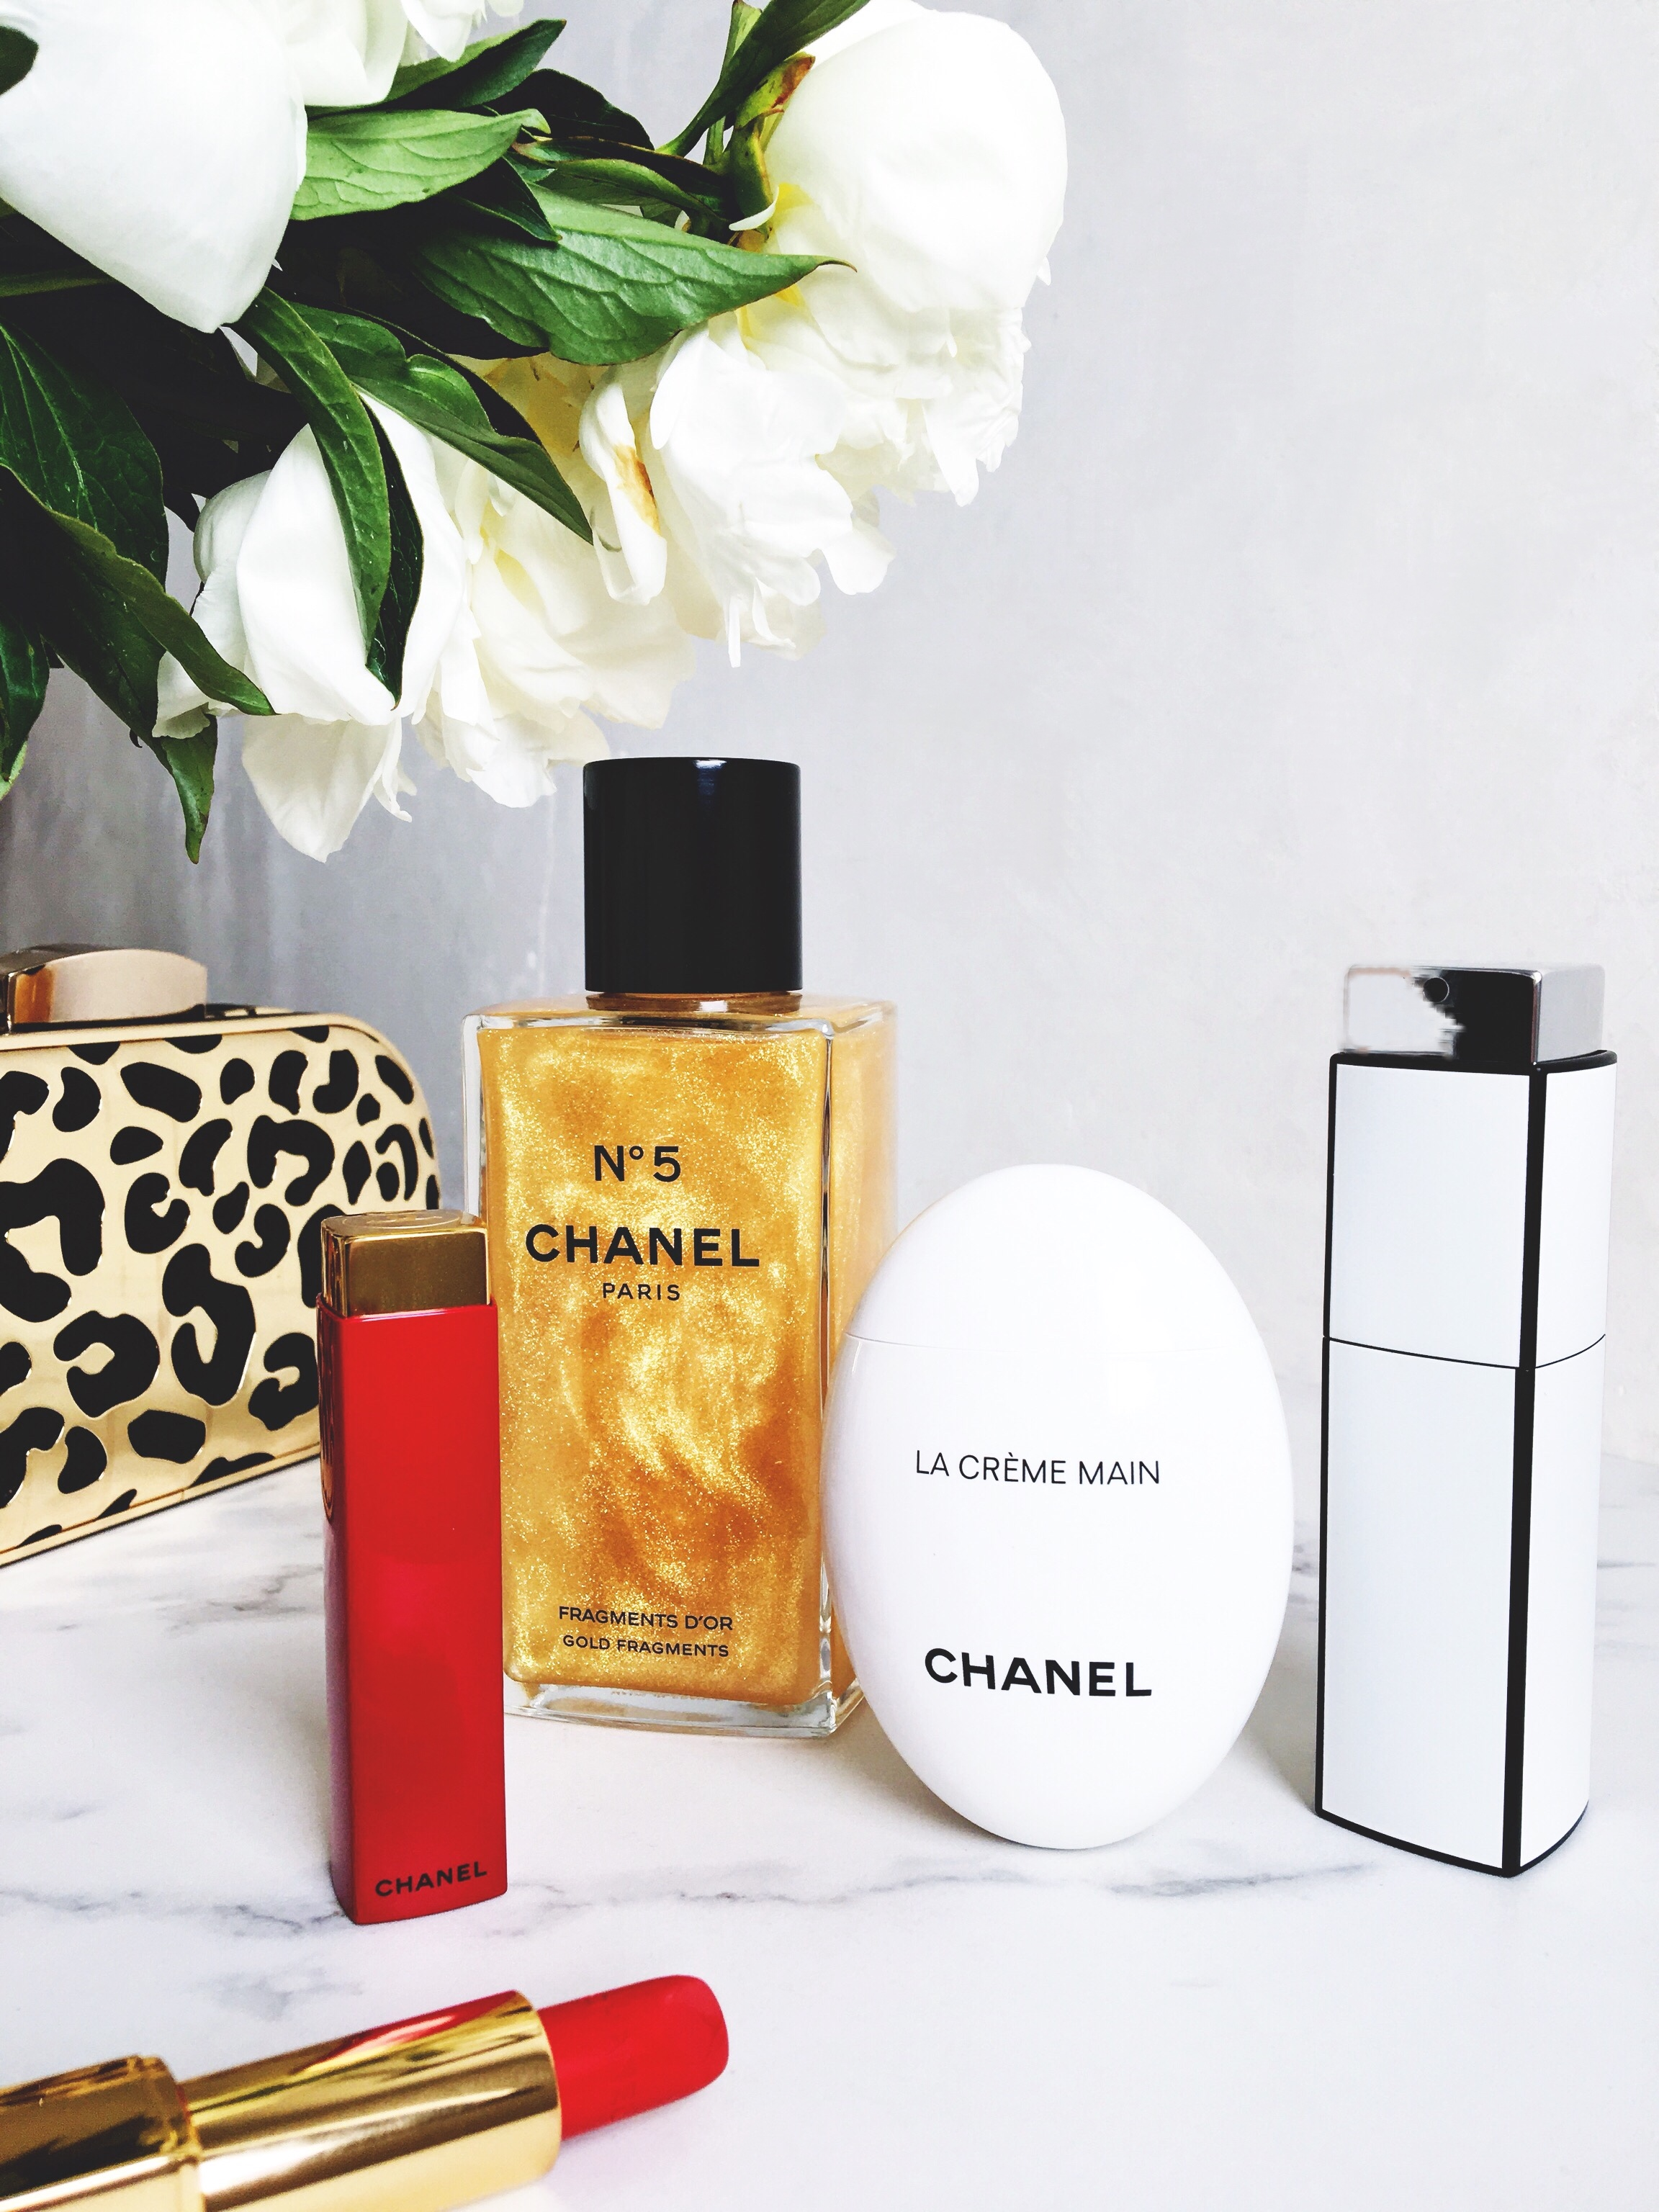 You Canu0027t Go Wrong With CHANEL. This Season, The Brand Has Some Truly  Delightful